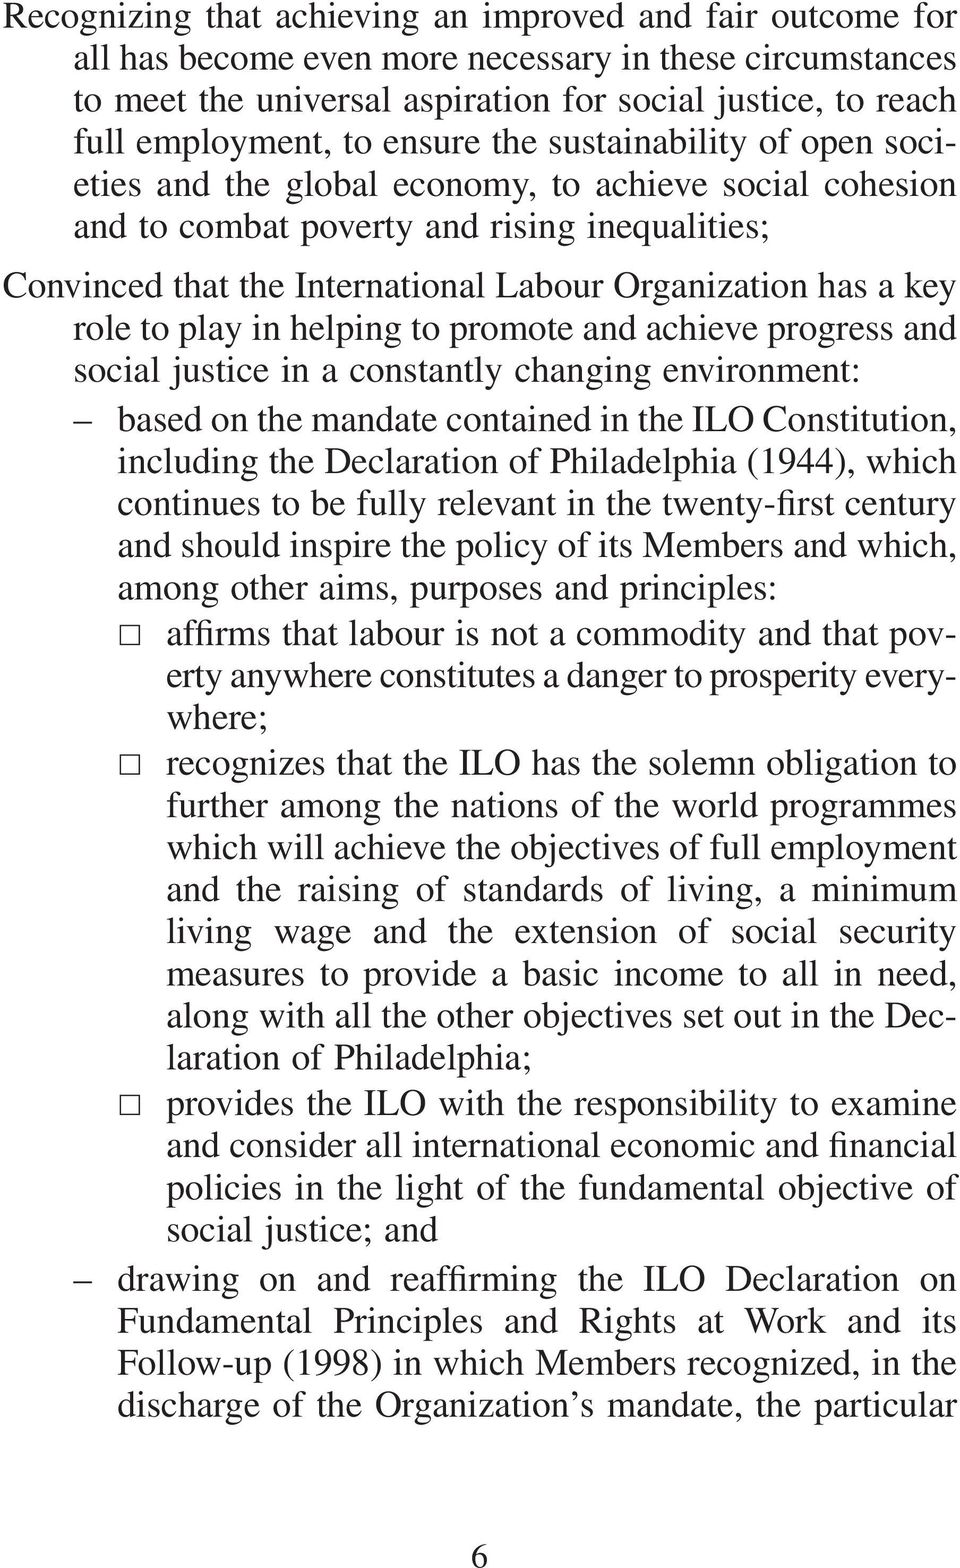 a key role to play in helping to promote and achieve progress and social justice in a constantly changing environment: based on the mandate contained in the ILO Constitution, including the